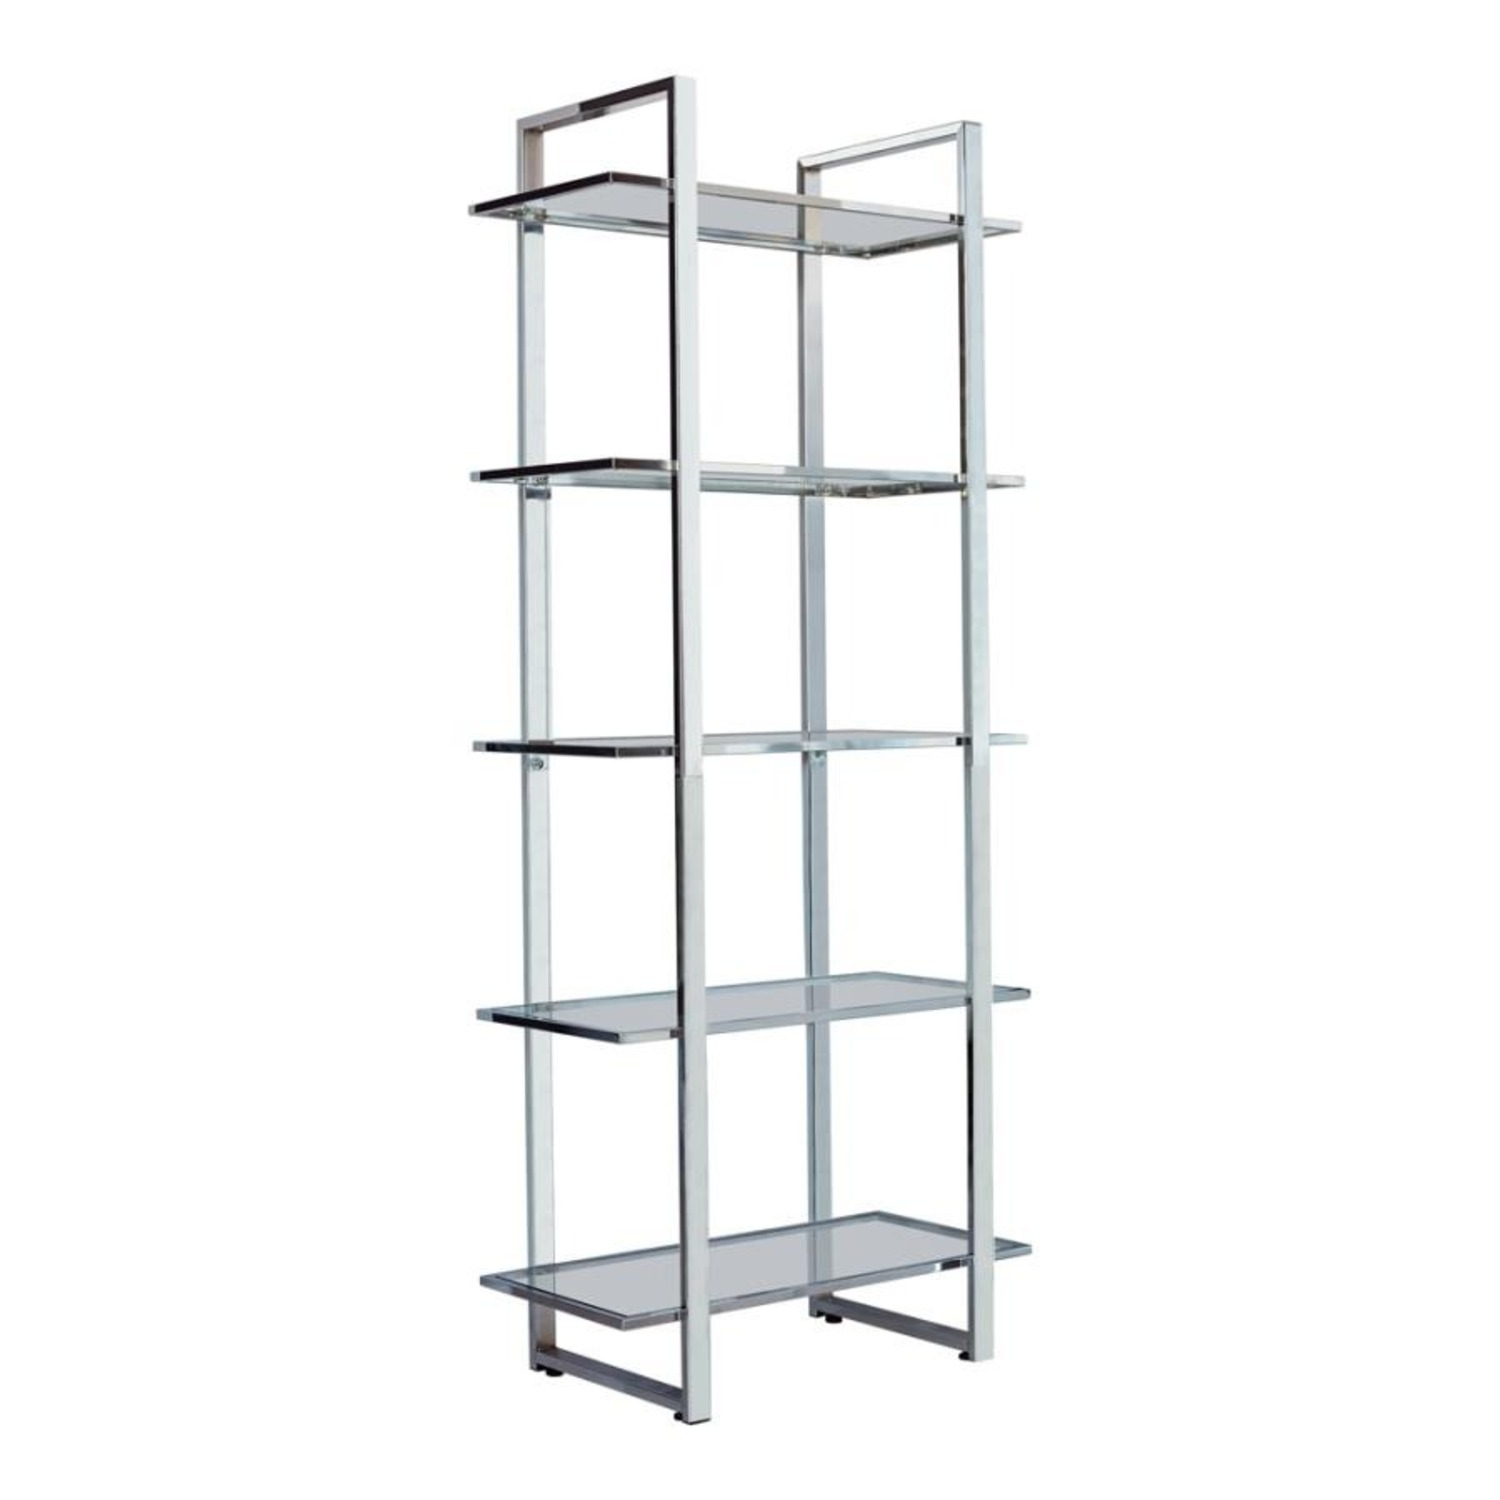 Bookcase In Chrome Finish W/ 5-Tier Shelves - image-0